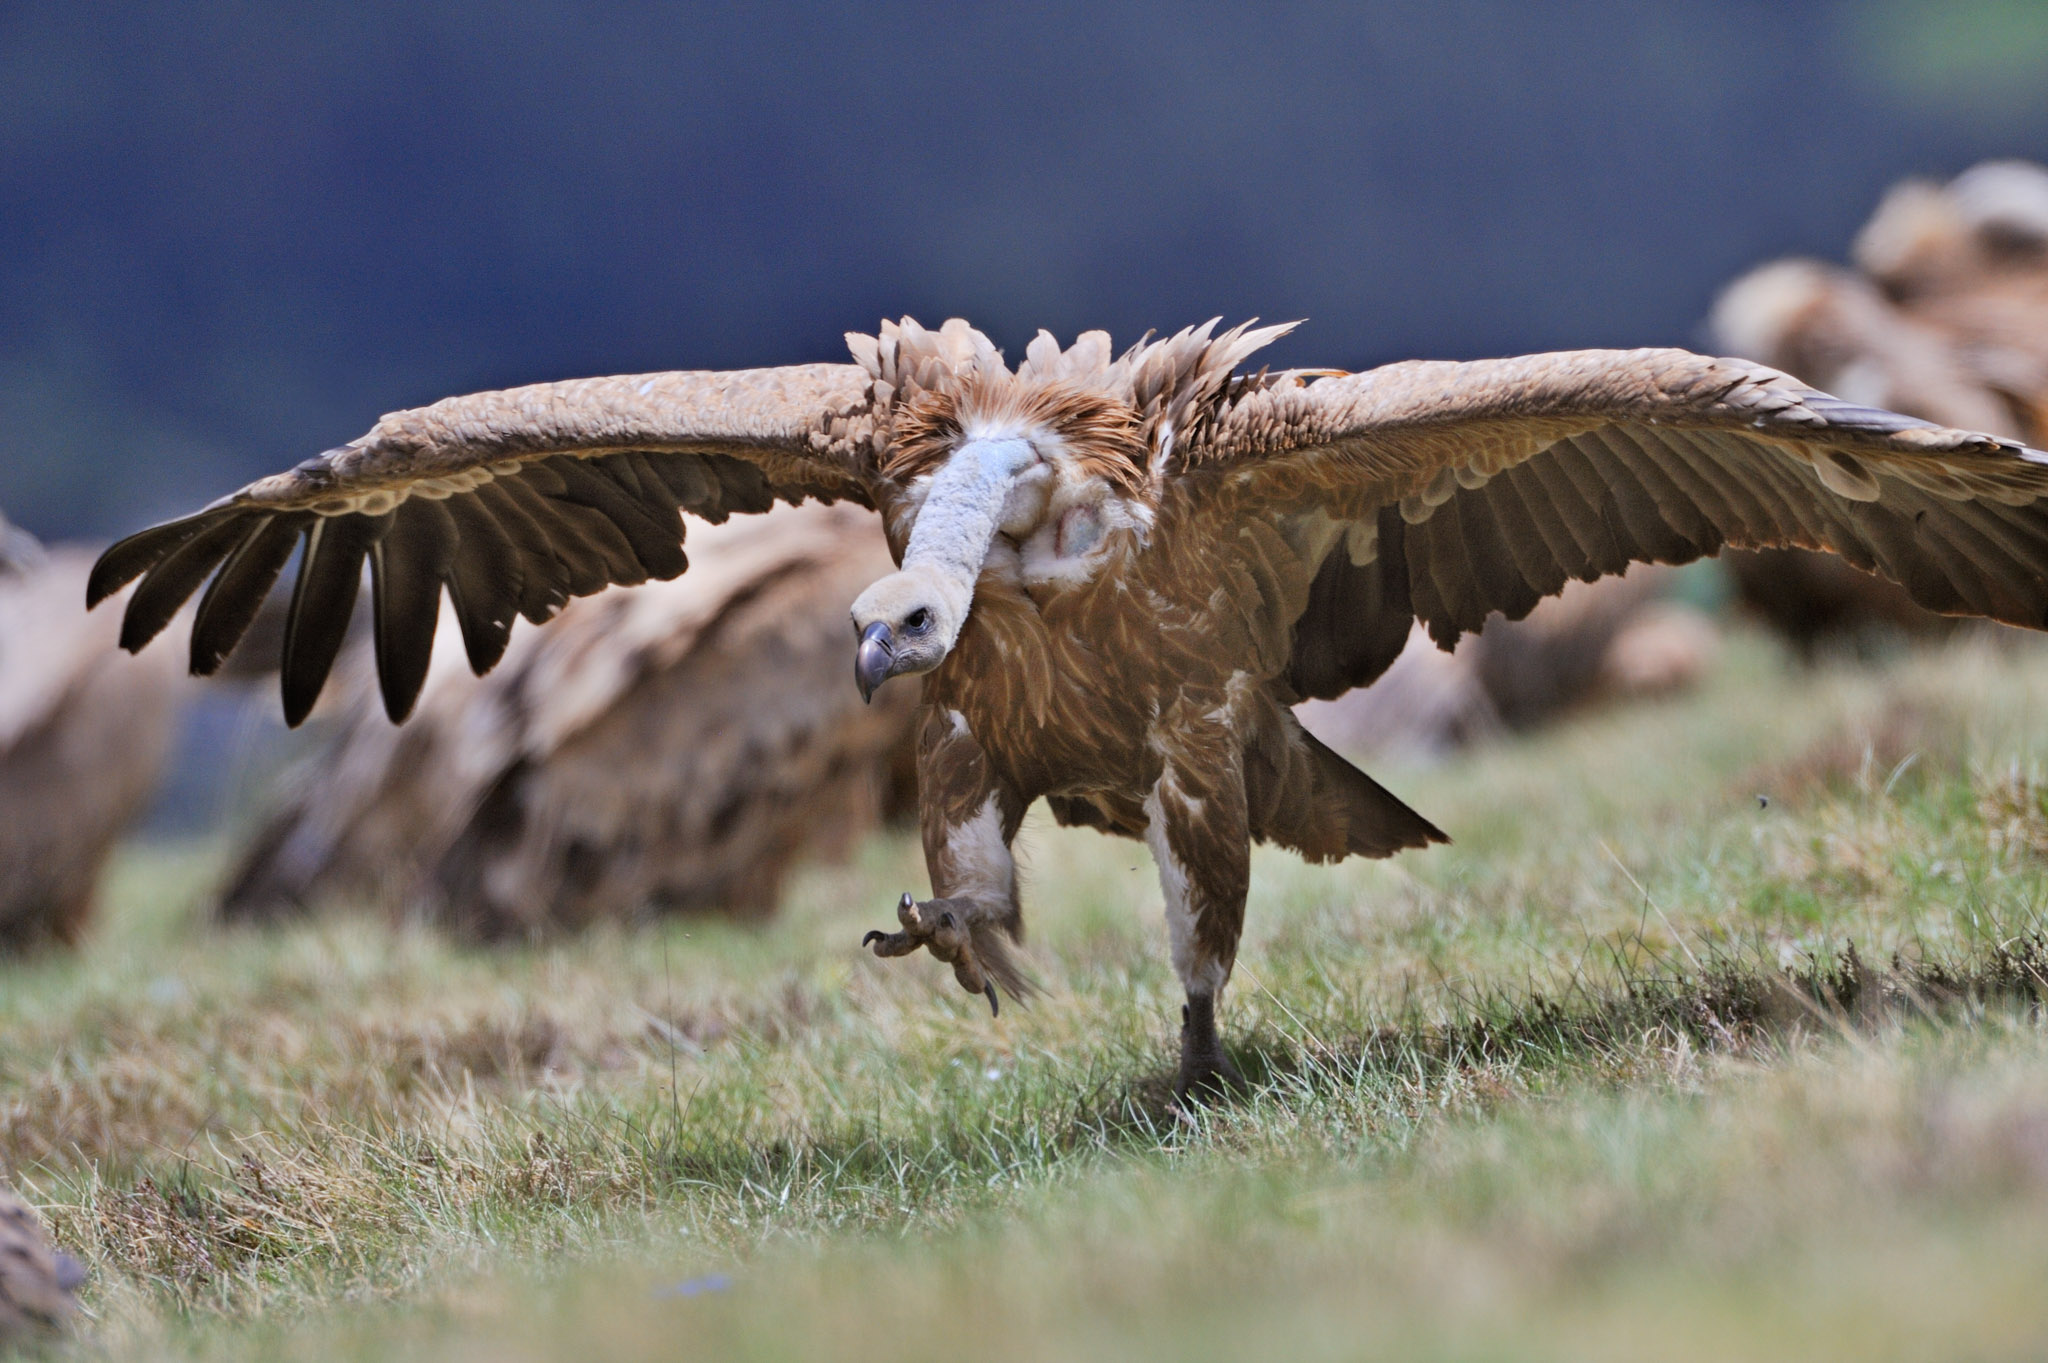 Veterinary drugs such as diclofenac are one of the main threats facing vultures in Europe and across the globe.